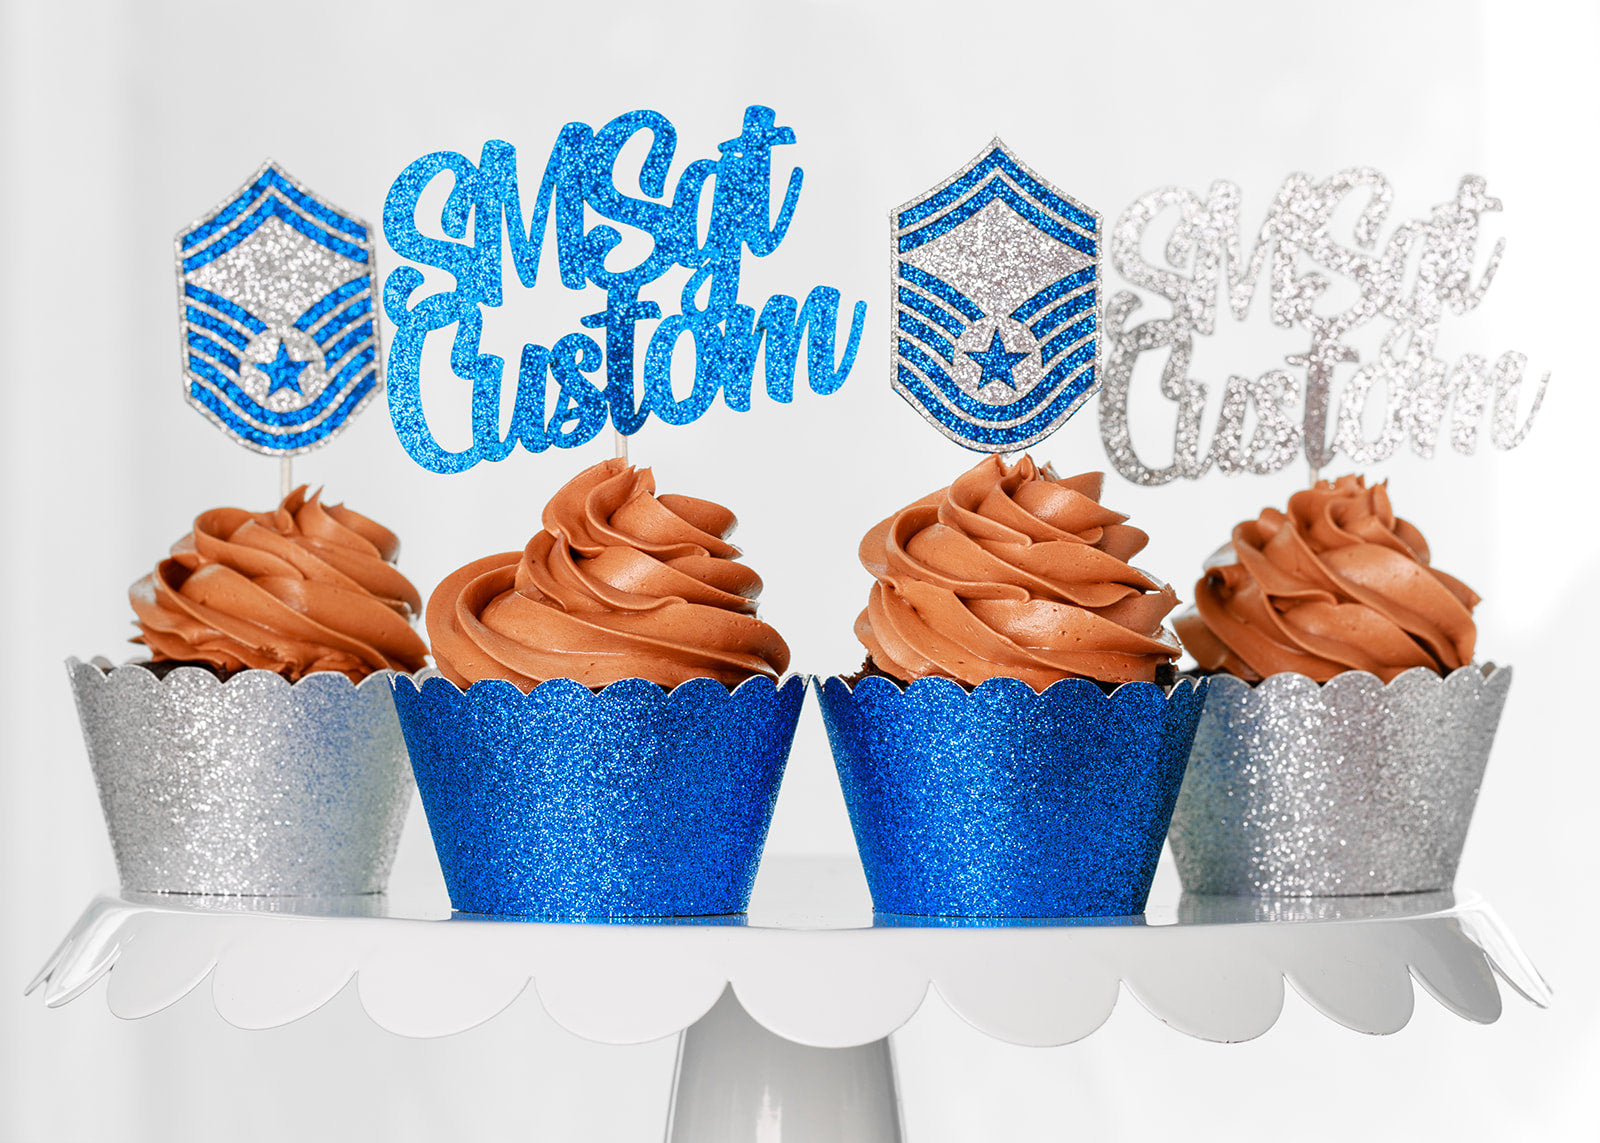 Air Force Enlisted Rank and Personalized Text Cupcake Toppers-USAF Promotion and Retirement Cupcake Toppers. All Enlisted Ranks Available!